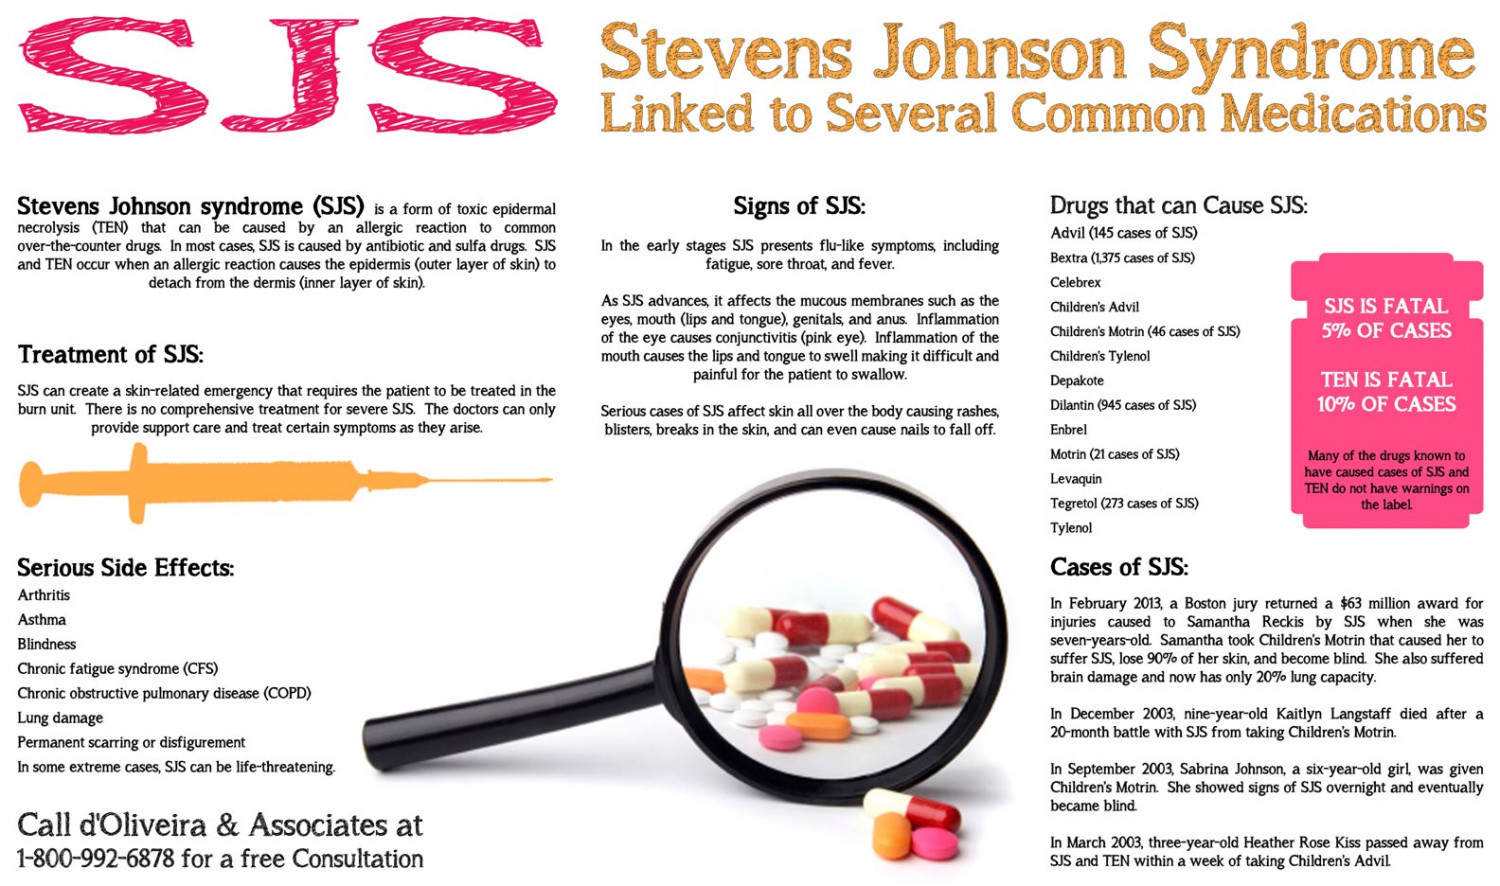 Stevens Johnson Syndrome Linked to Several Common Medications Infographic